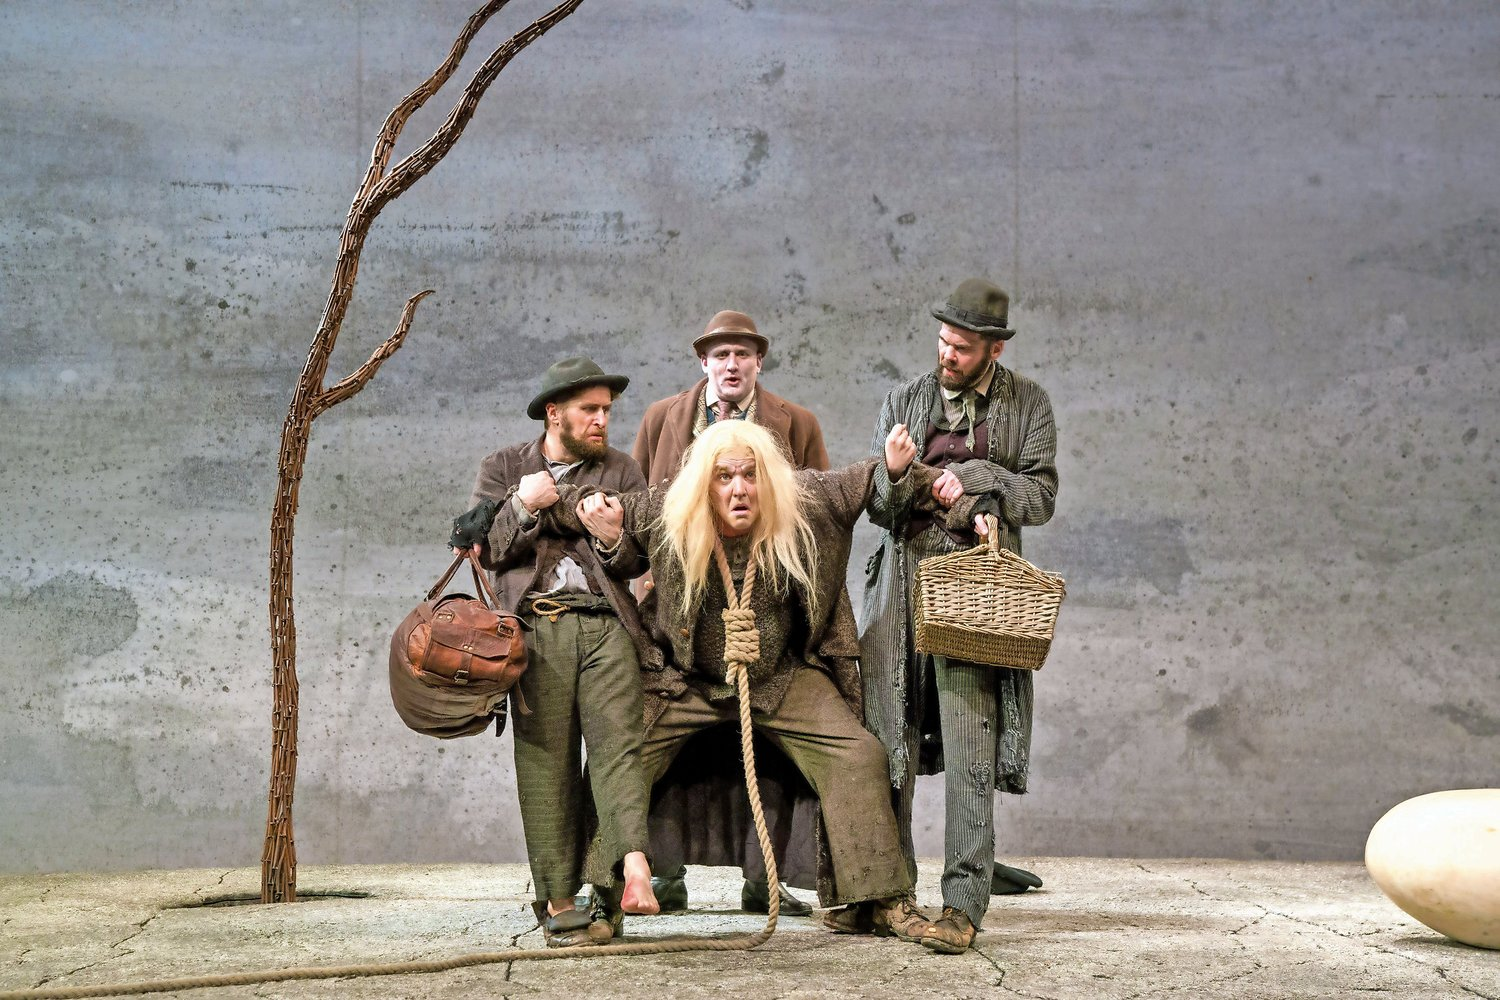 Samuel Beckett's masterpiece 'Waiting for Godot' is playing at John Jay Colleg for a limited time.